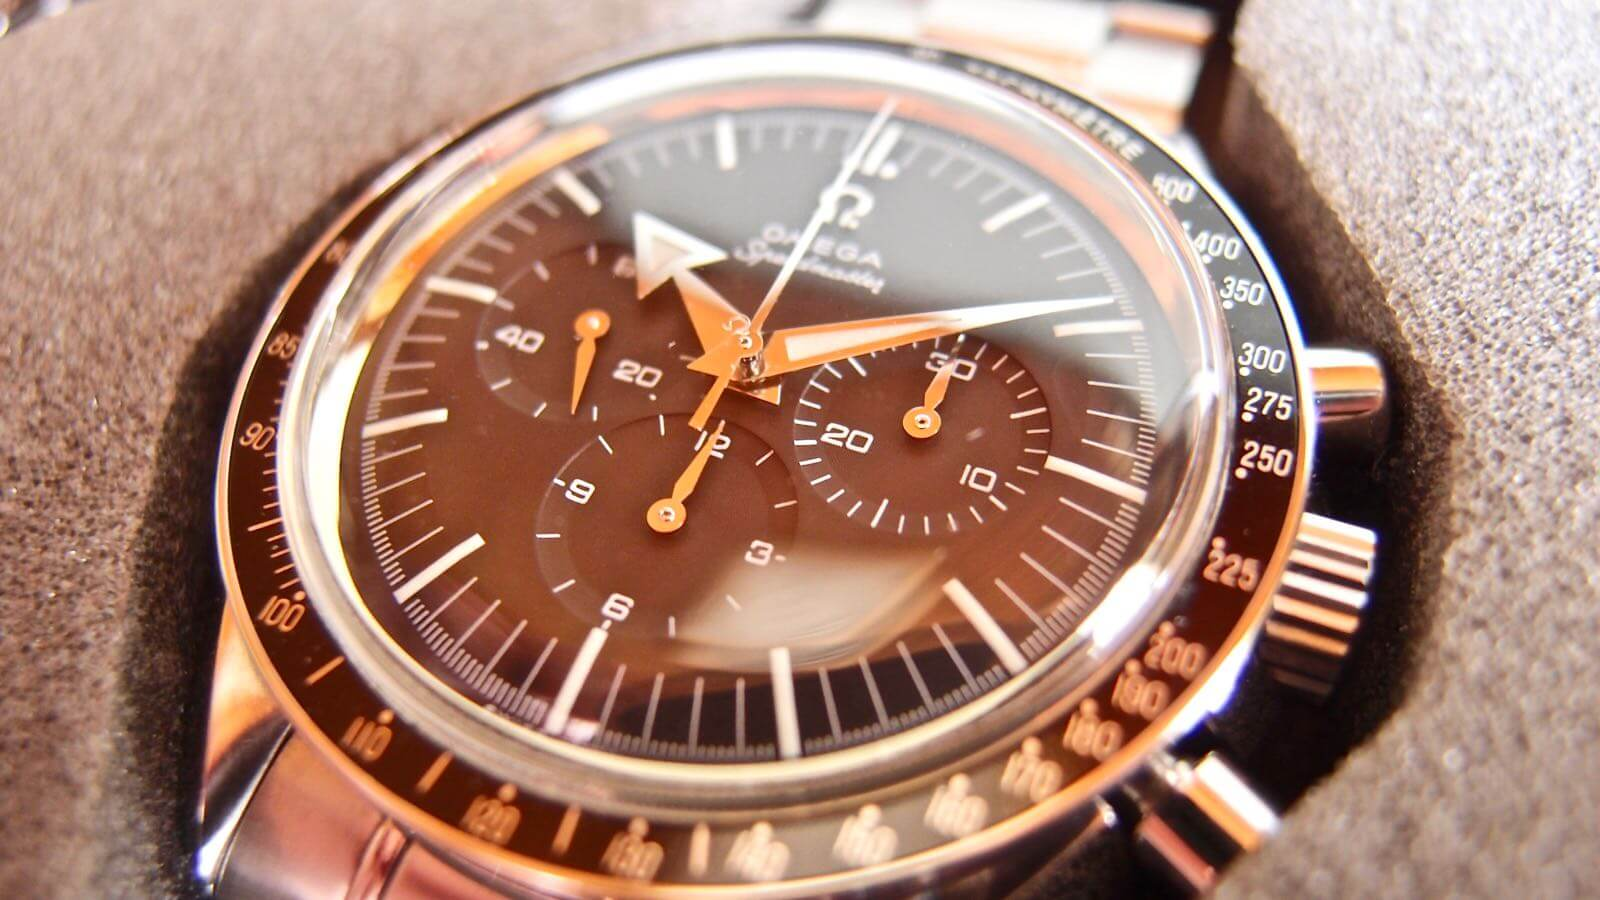 0030 Ω Omega Speedmaster History Eye catch image